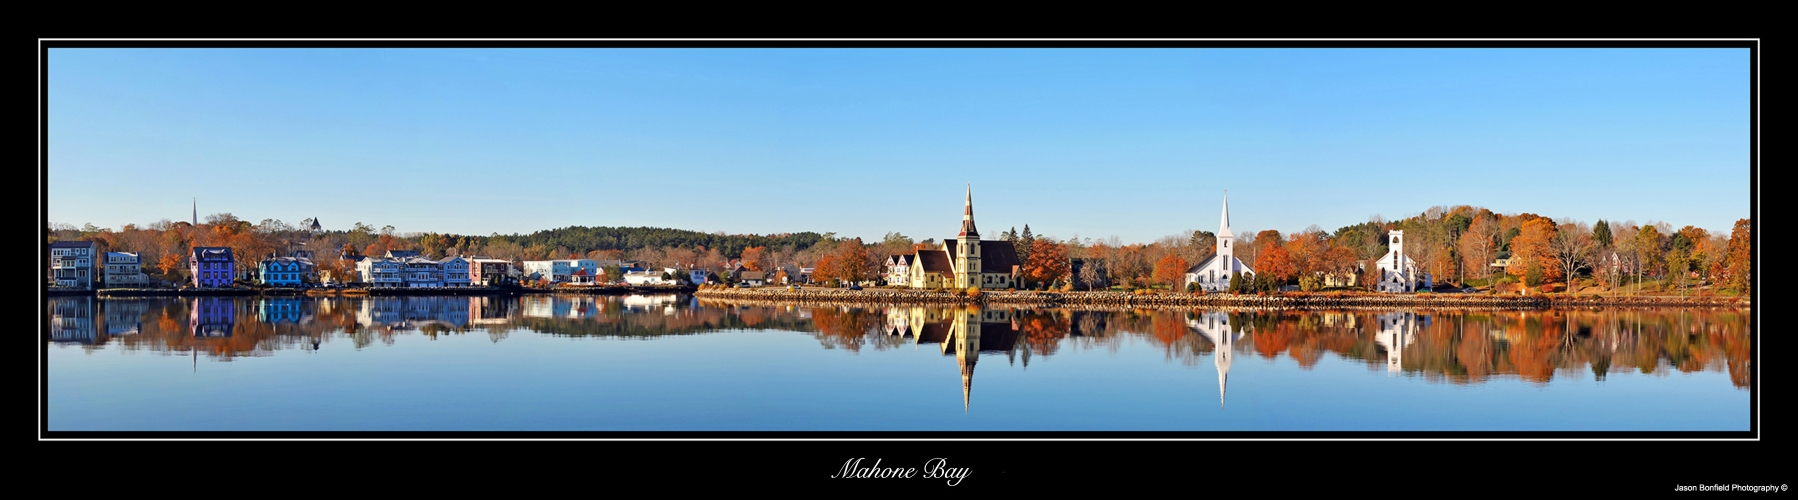 Panoramic landscape picture of three churches in Mahone Bay with clear blue sky reflected in the water at Mahone Bay, Nova Scotia in autumn